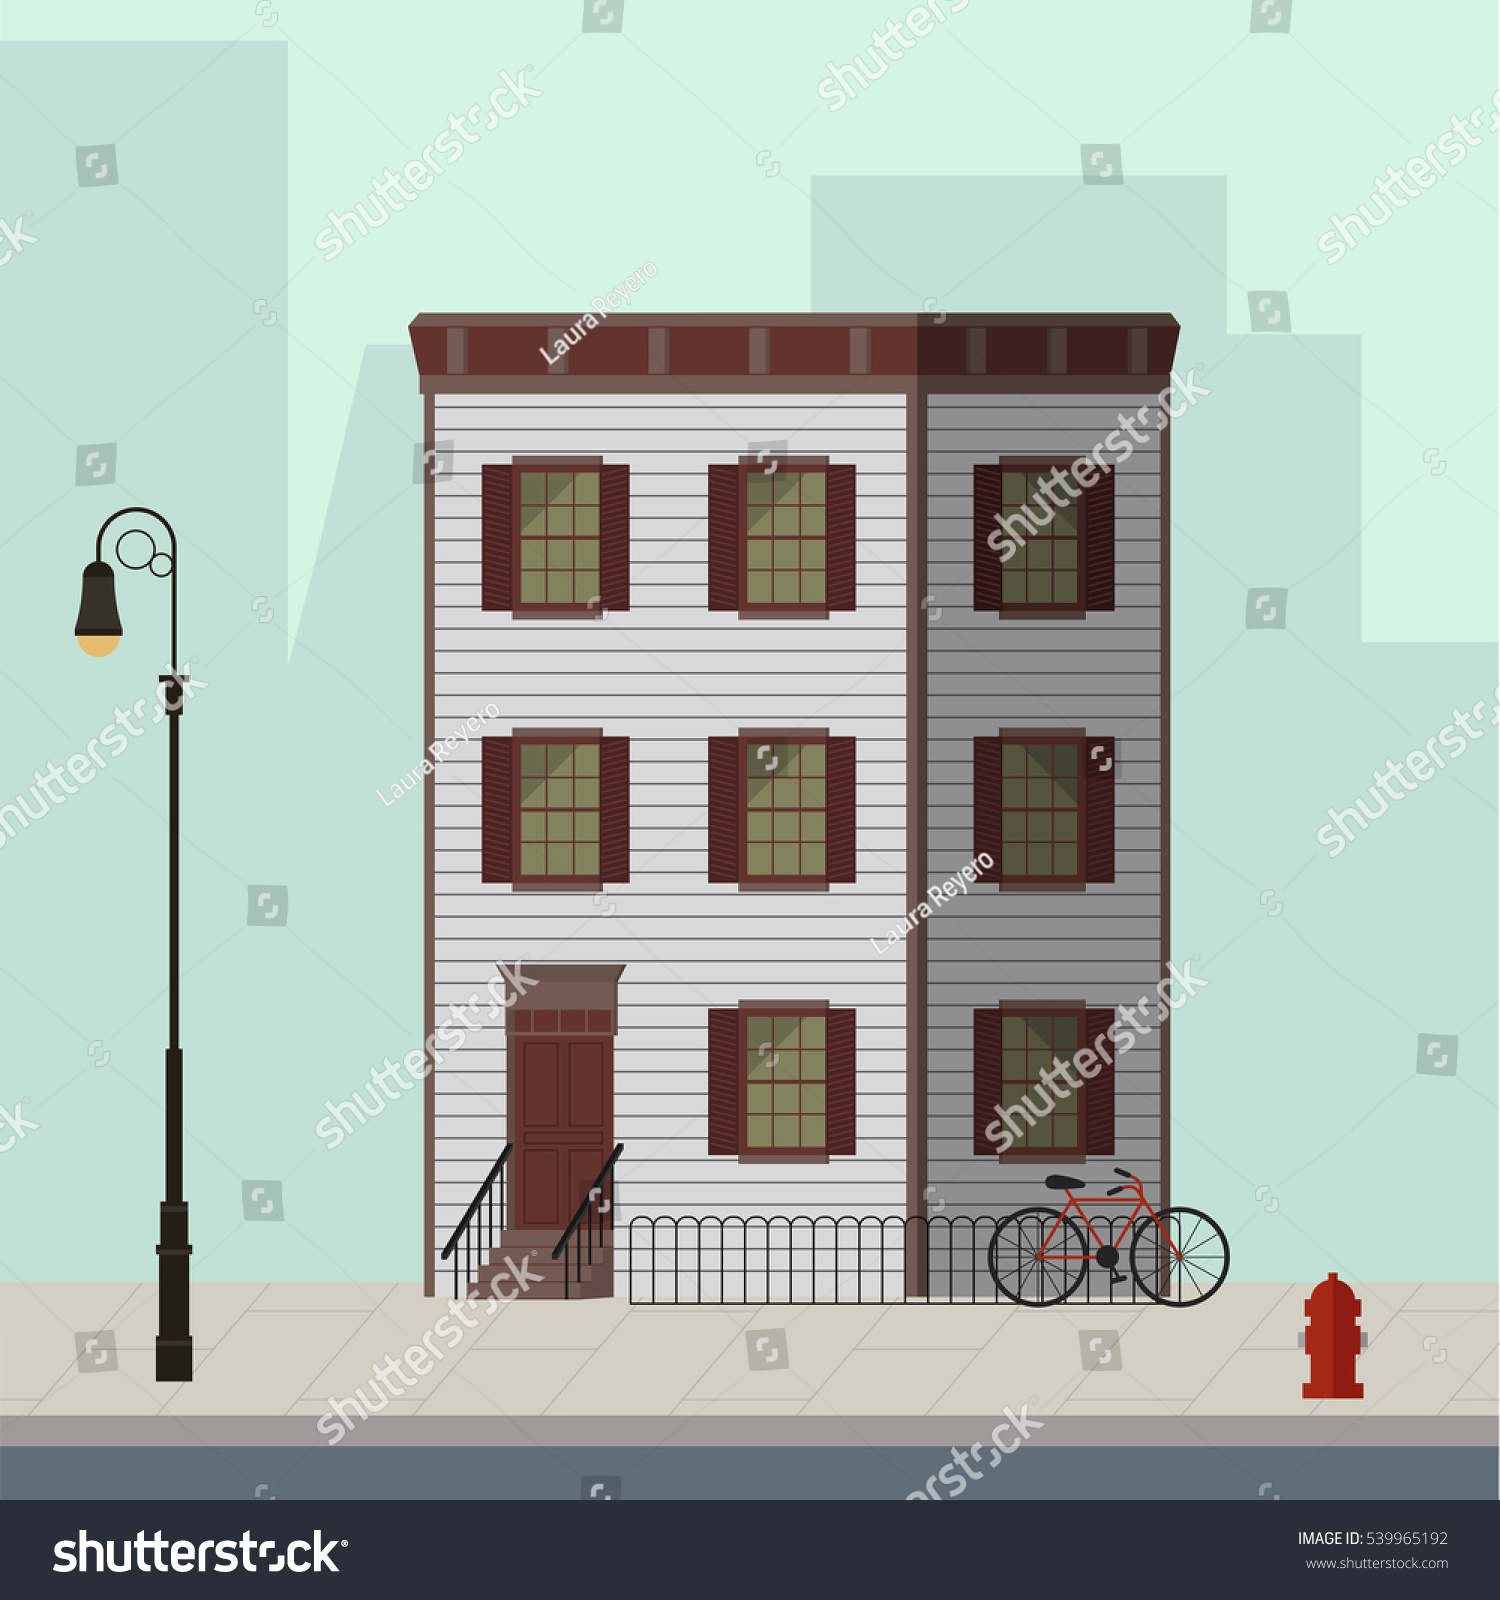 Apartment Building Illustration small apartment building stairs main door stock vector 539965192